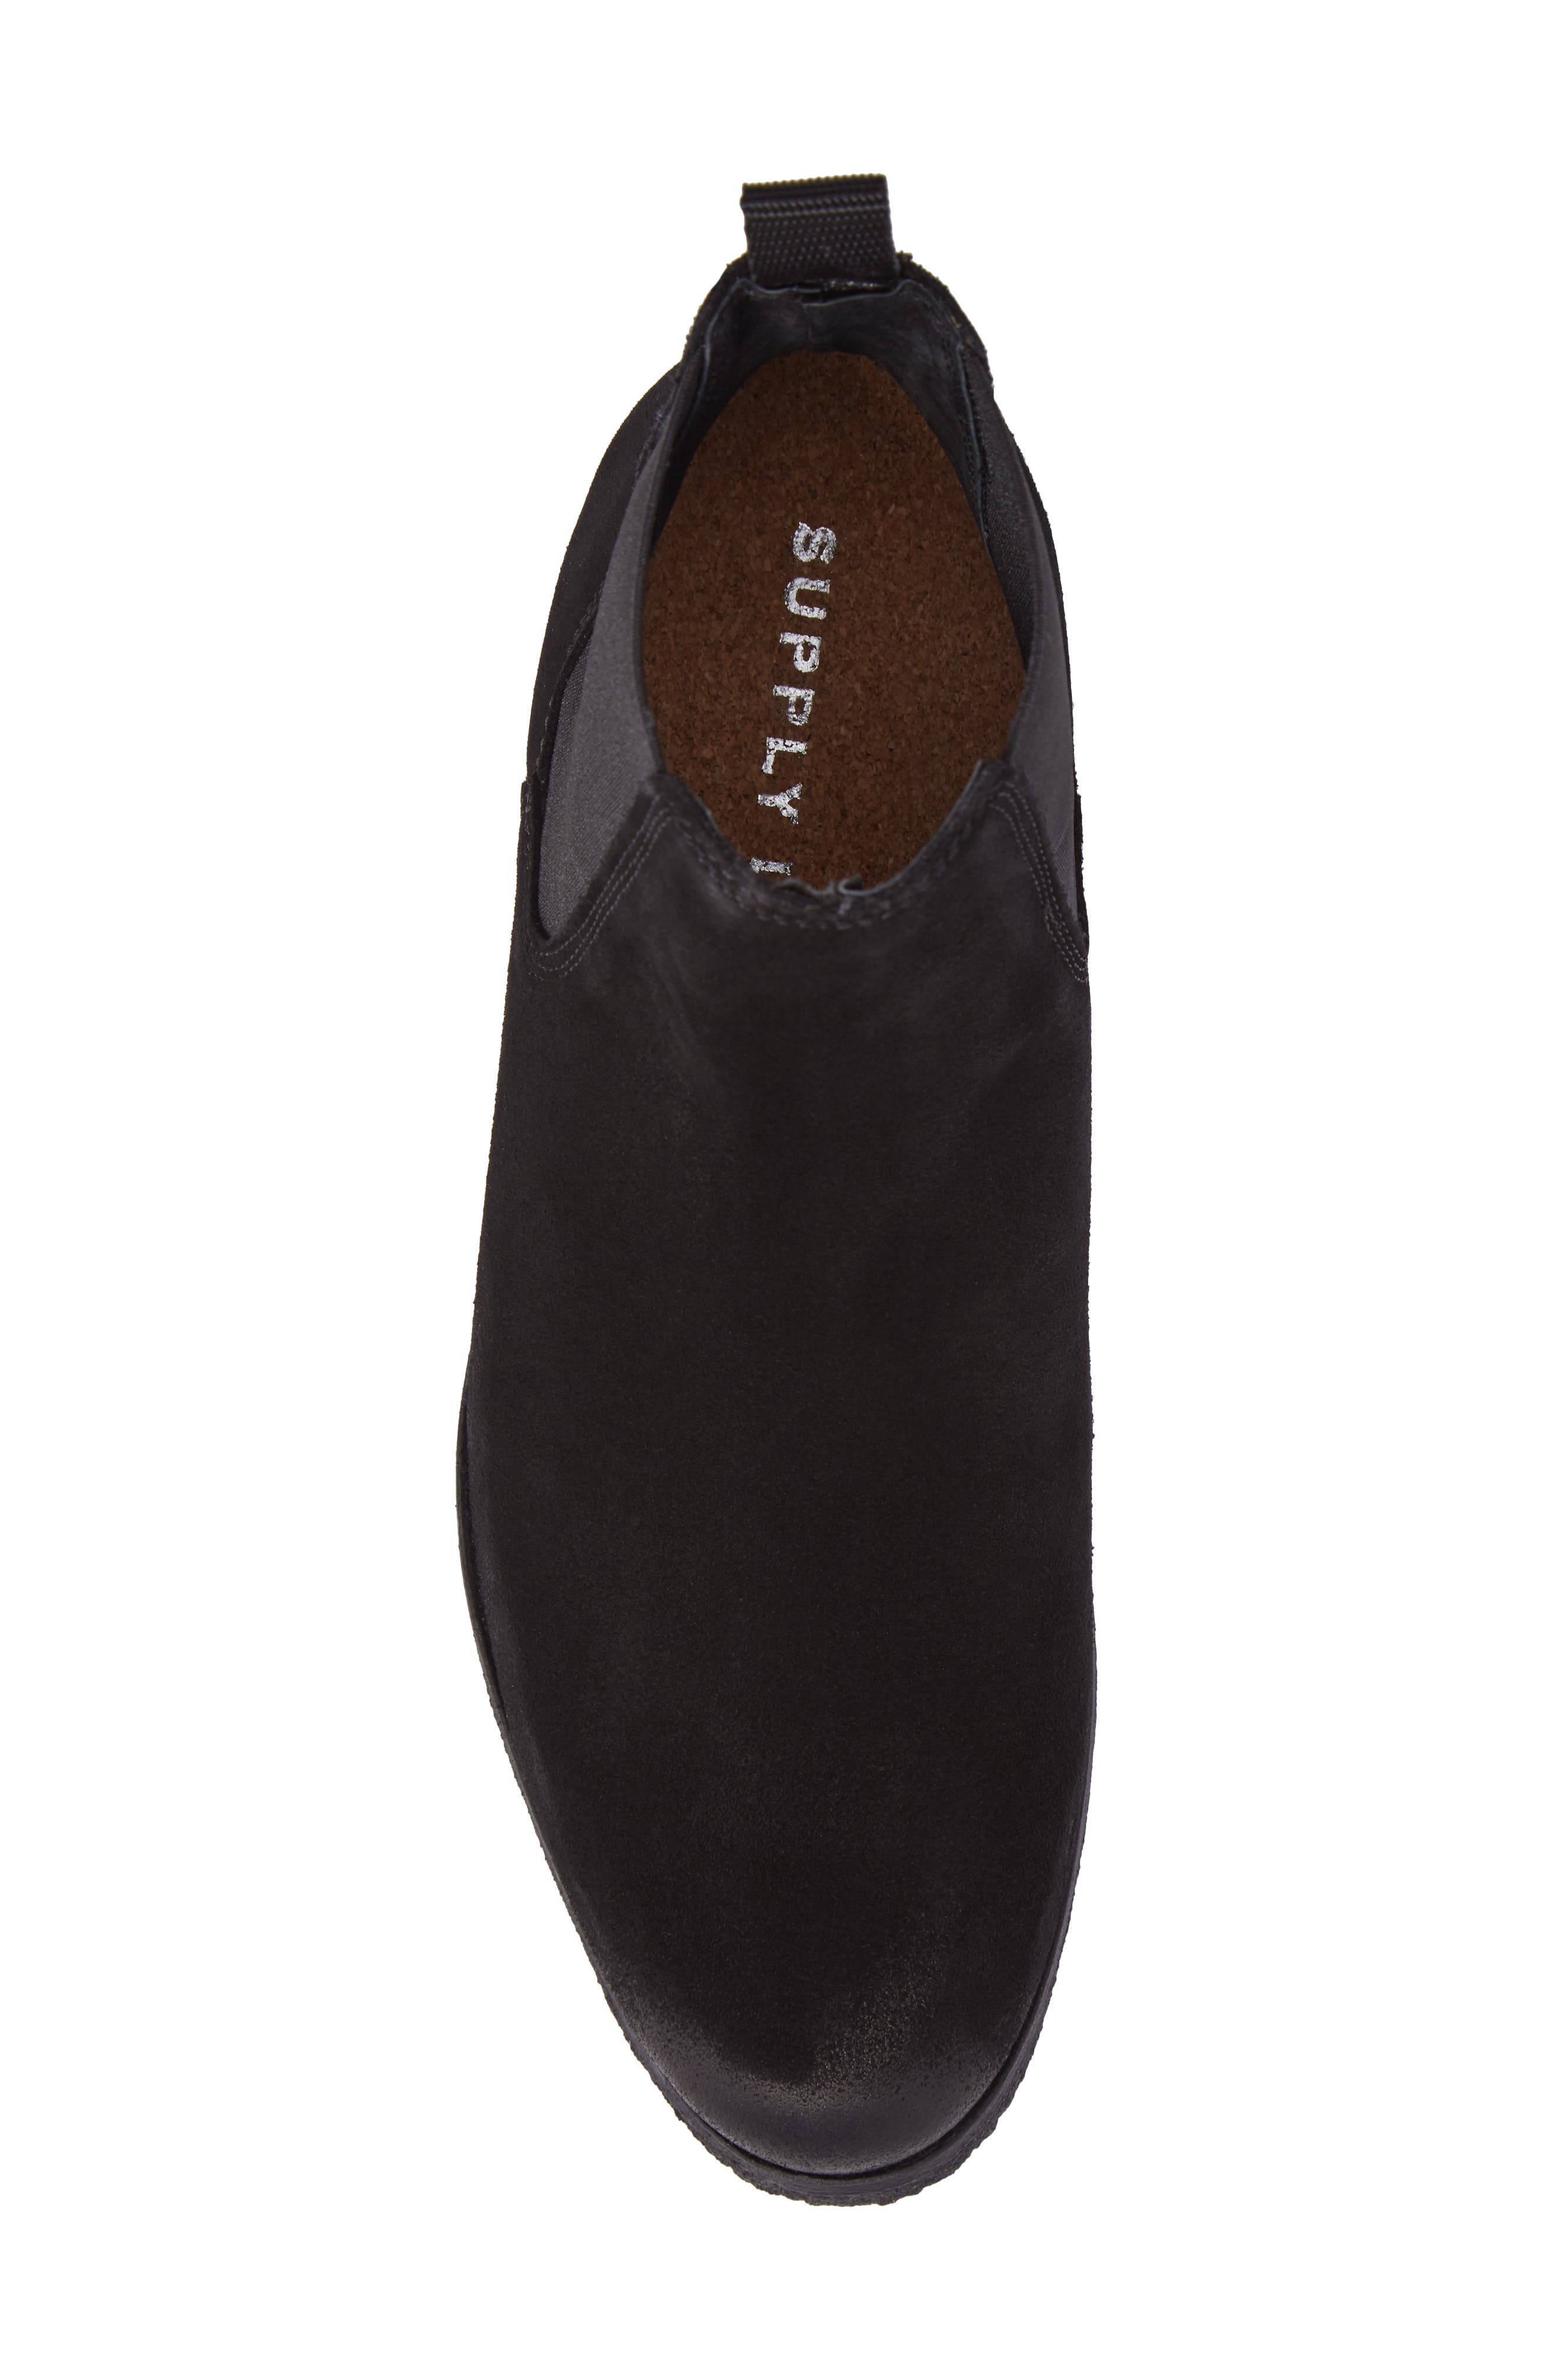 SUPPLY LAB,                             Jared Chelsea Boot,                             Alternate thumbnail 5, color,                             002